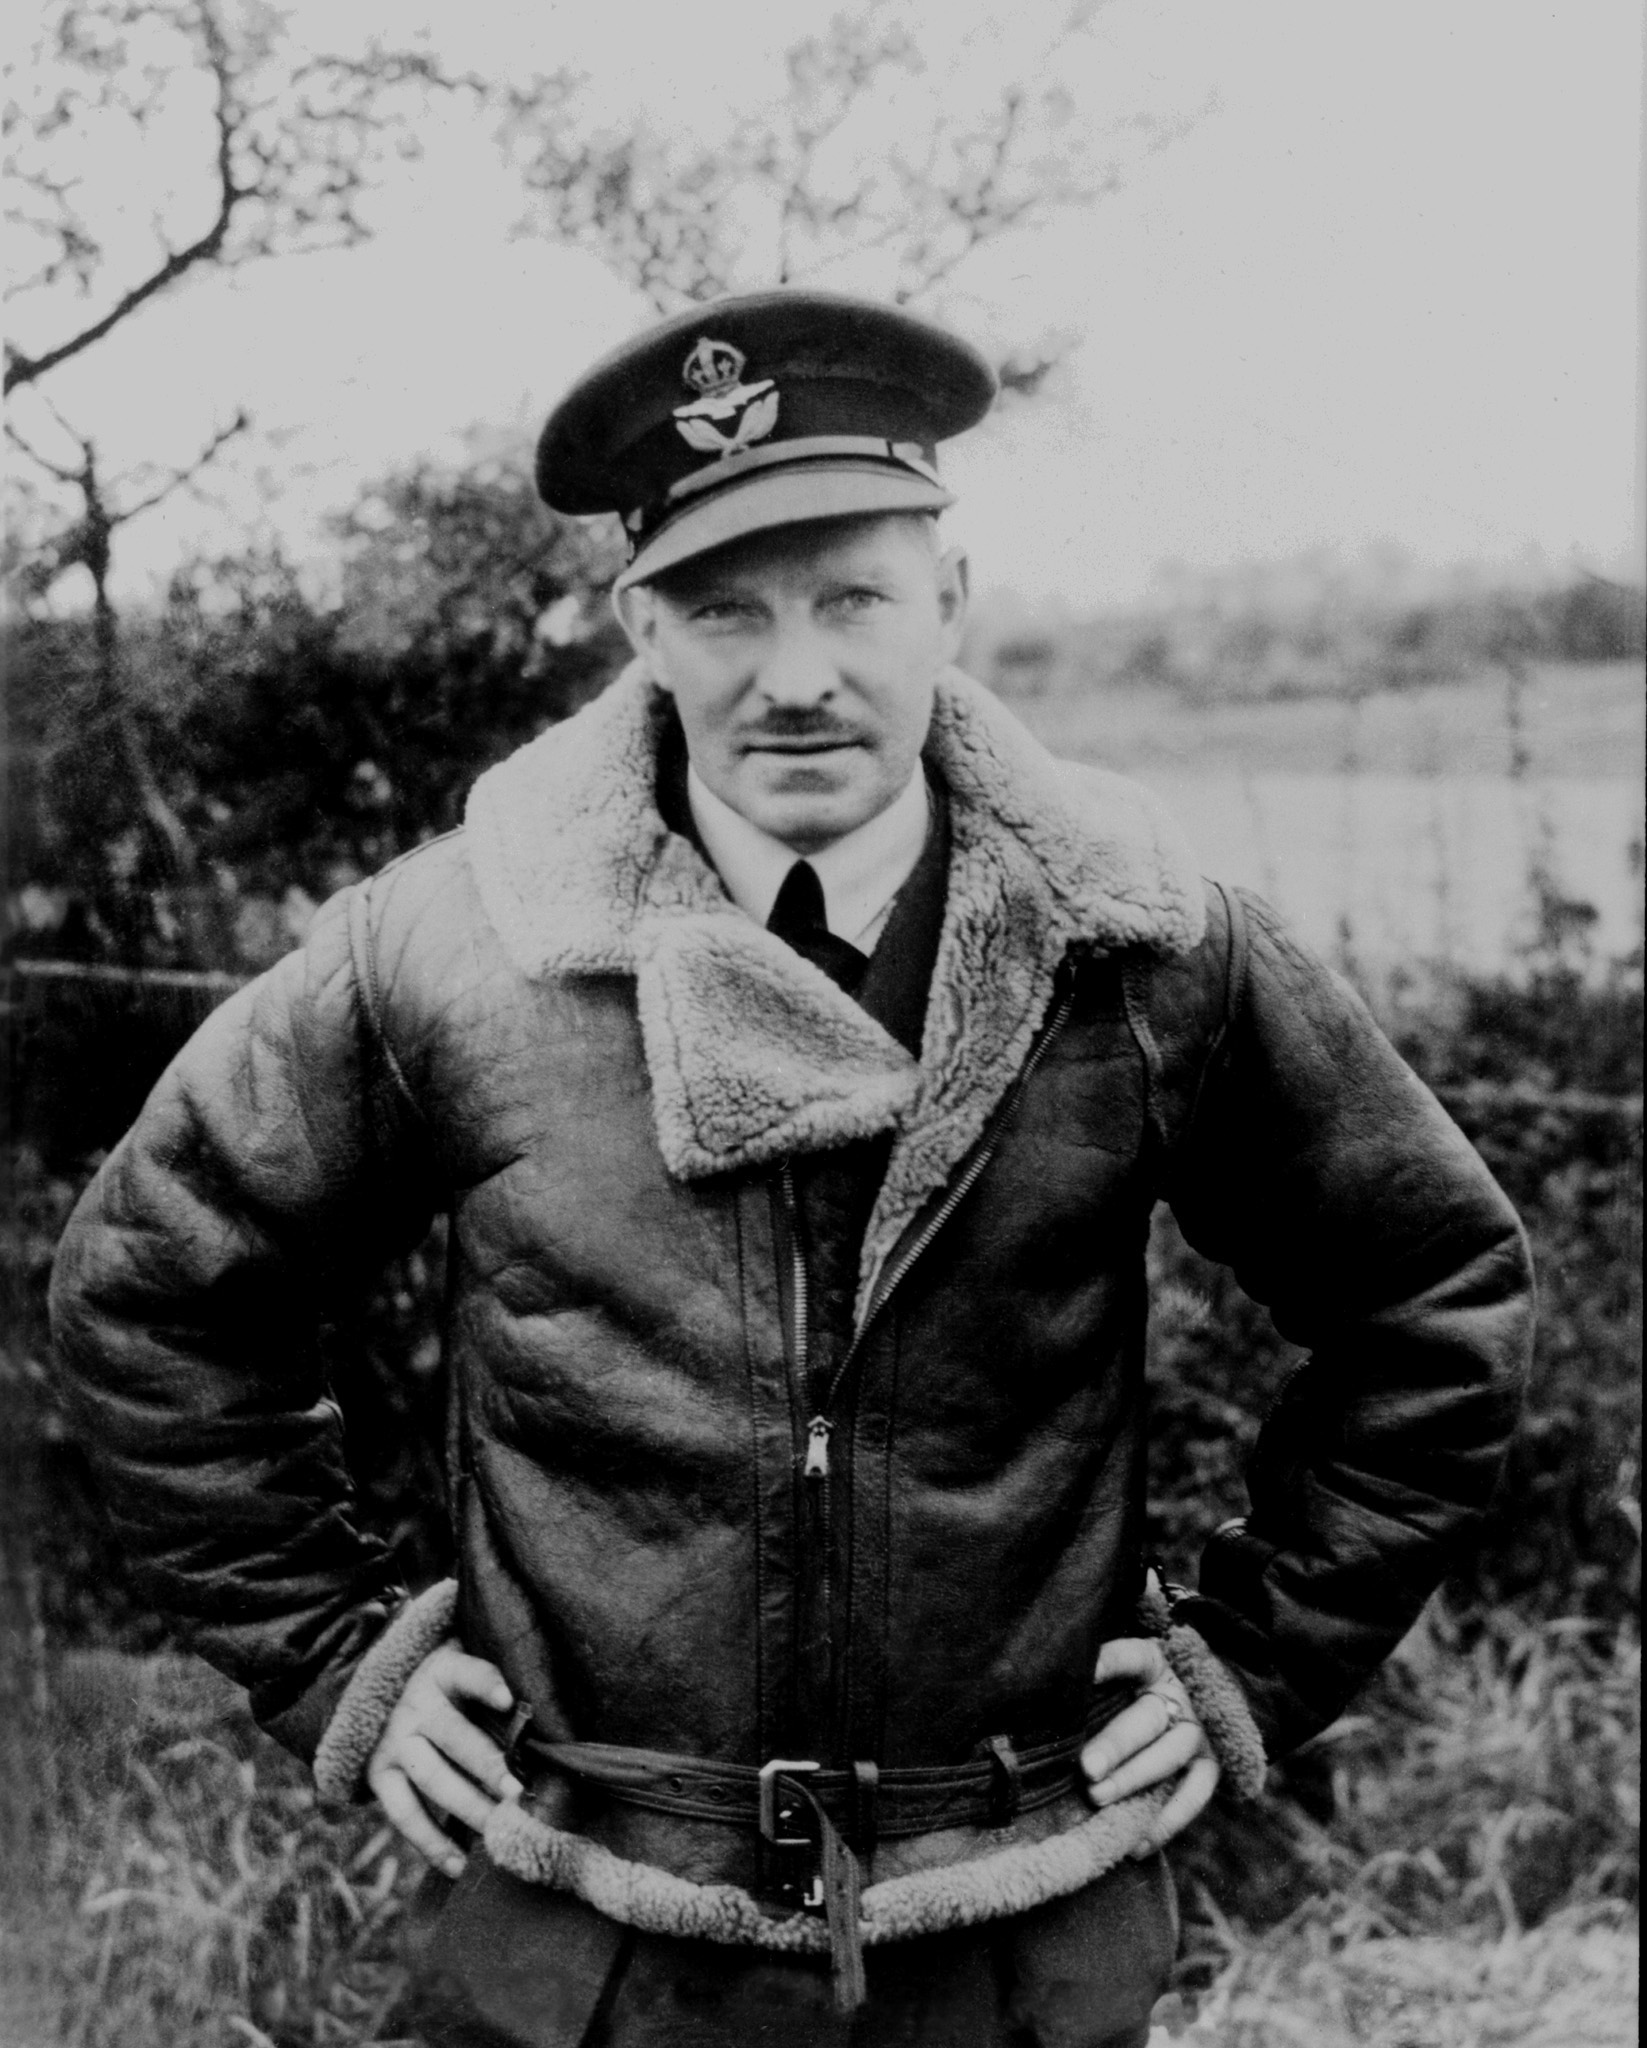 Squadron Leader Ernest A. McNab, the commanding officer of No. 1 Squadron during the Battle of Britain. PHOTO: Library and Archives Canada, PL-905